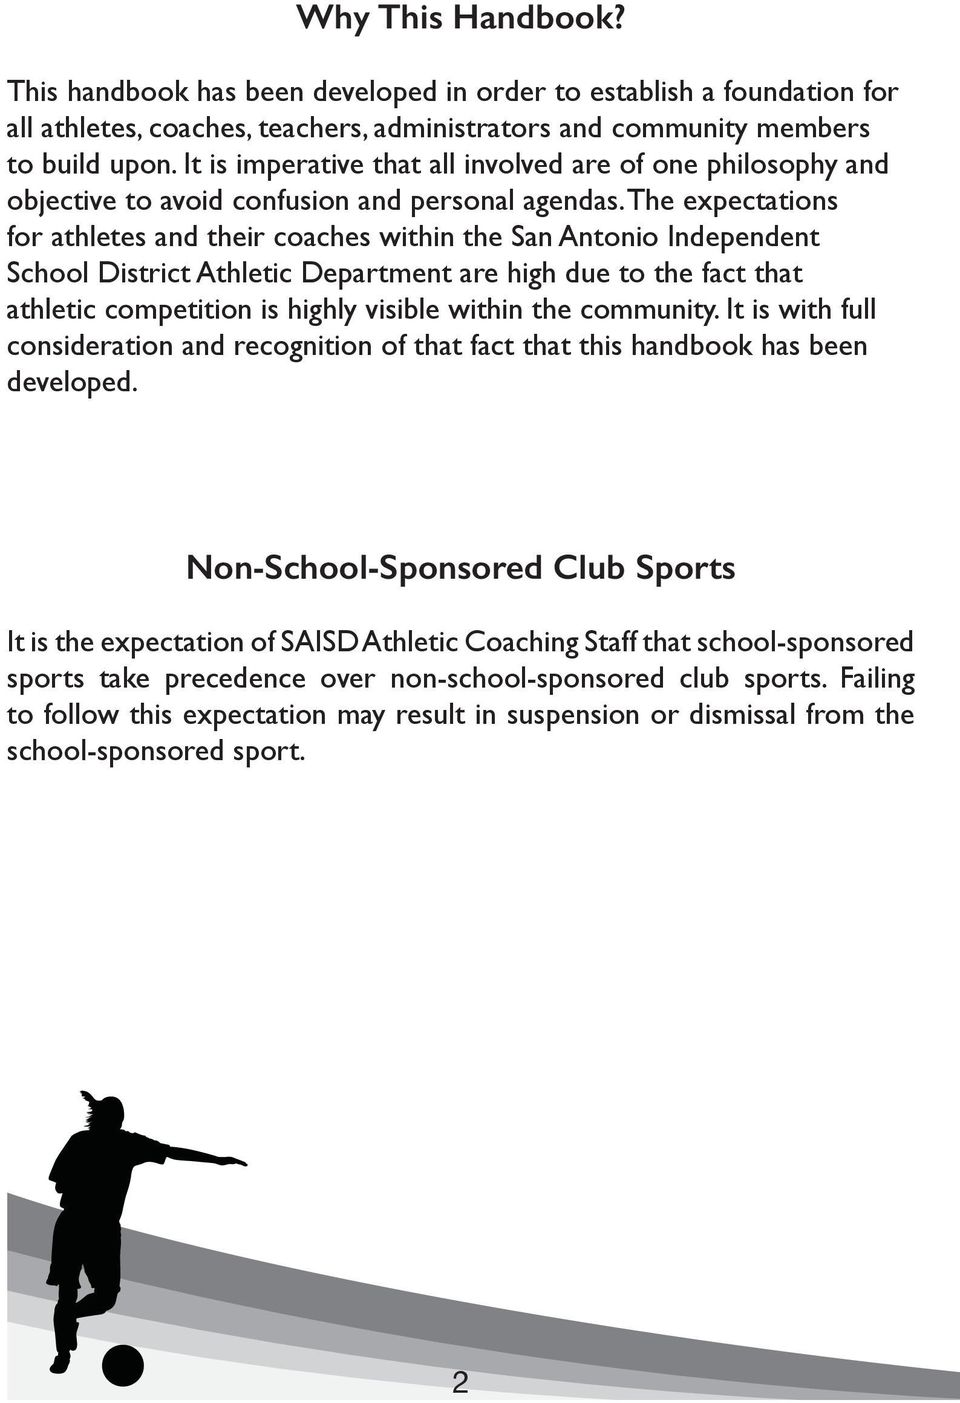 The expectations for athletes and their coaches within the San Antonio Independent School District Athletic Department are high due to the fact that athletic competition is highly visible within the